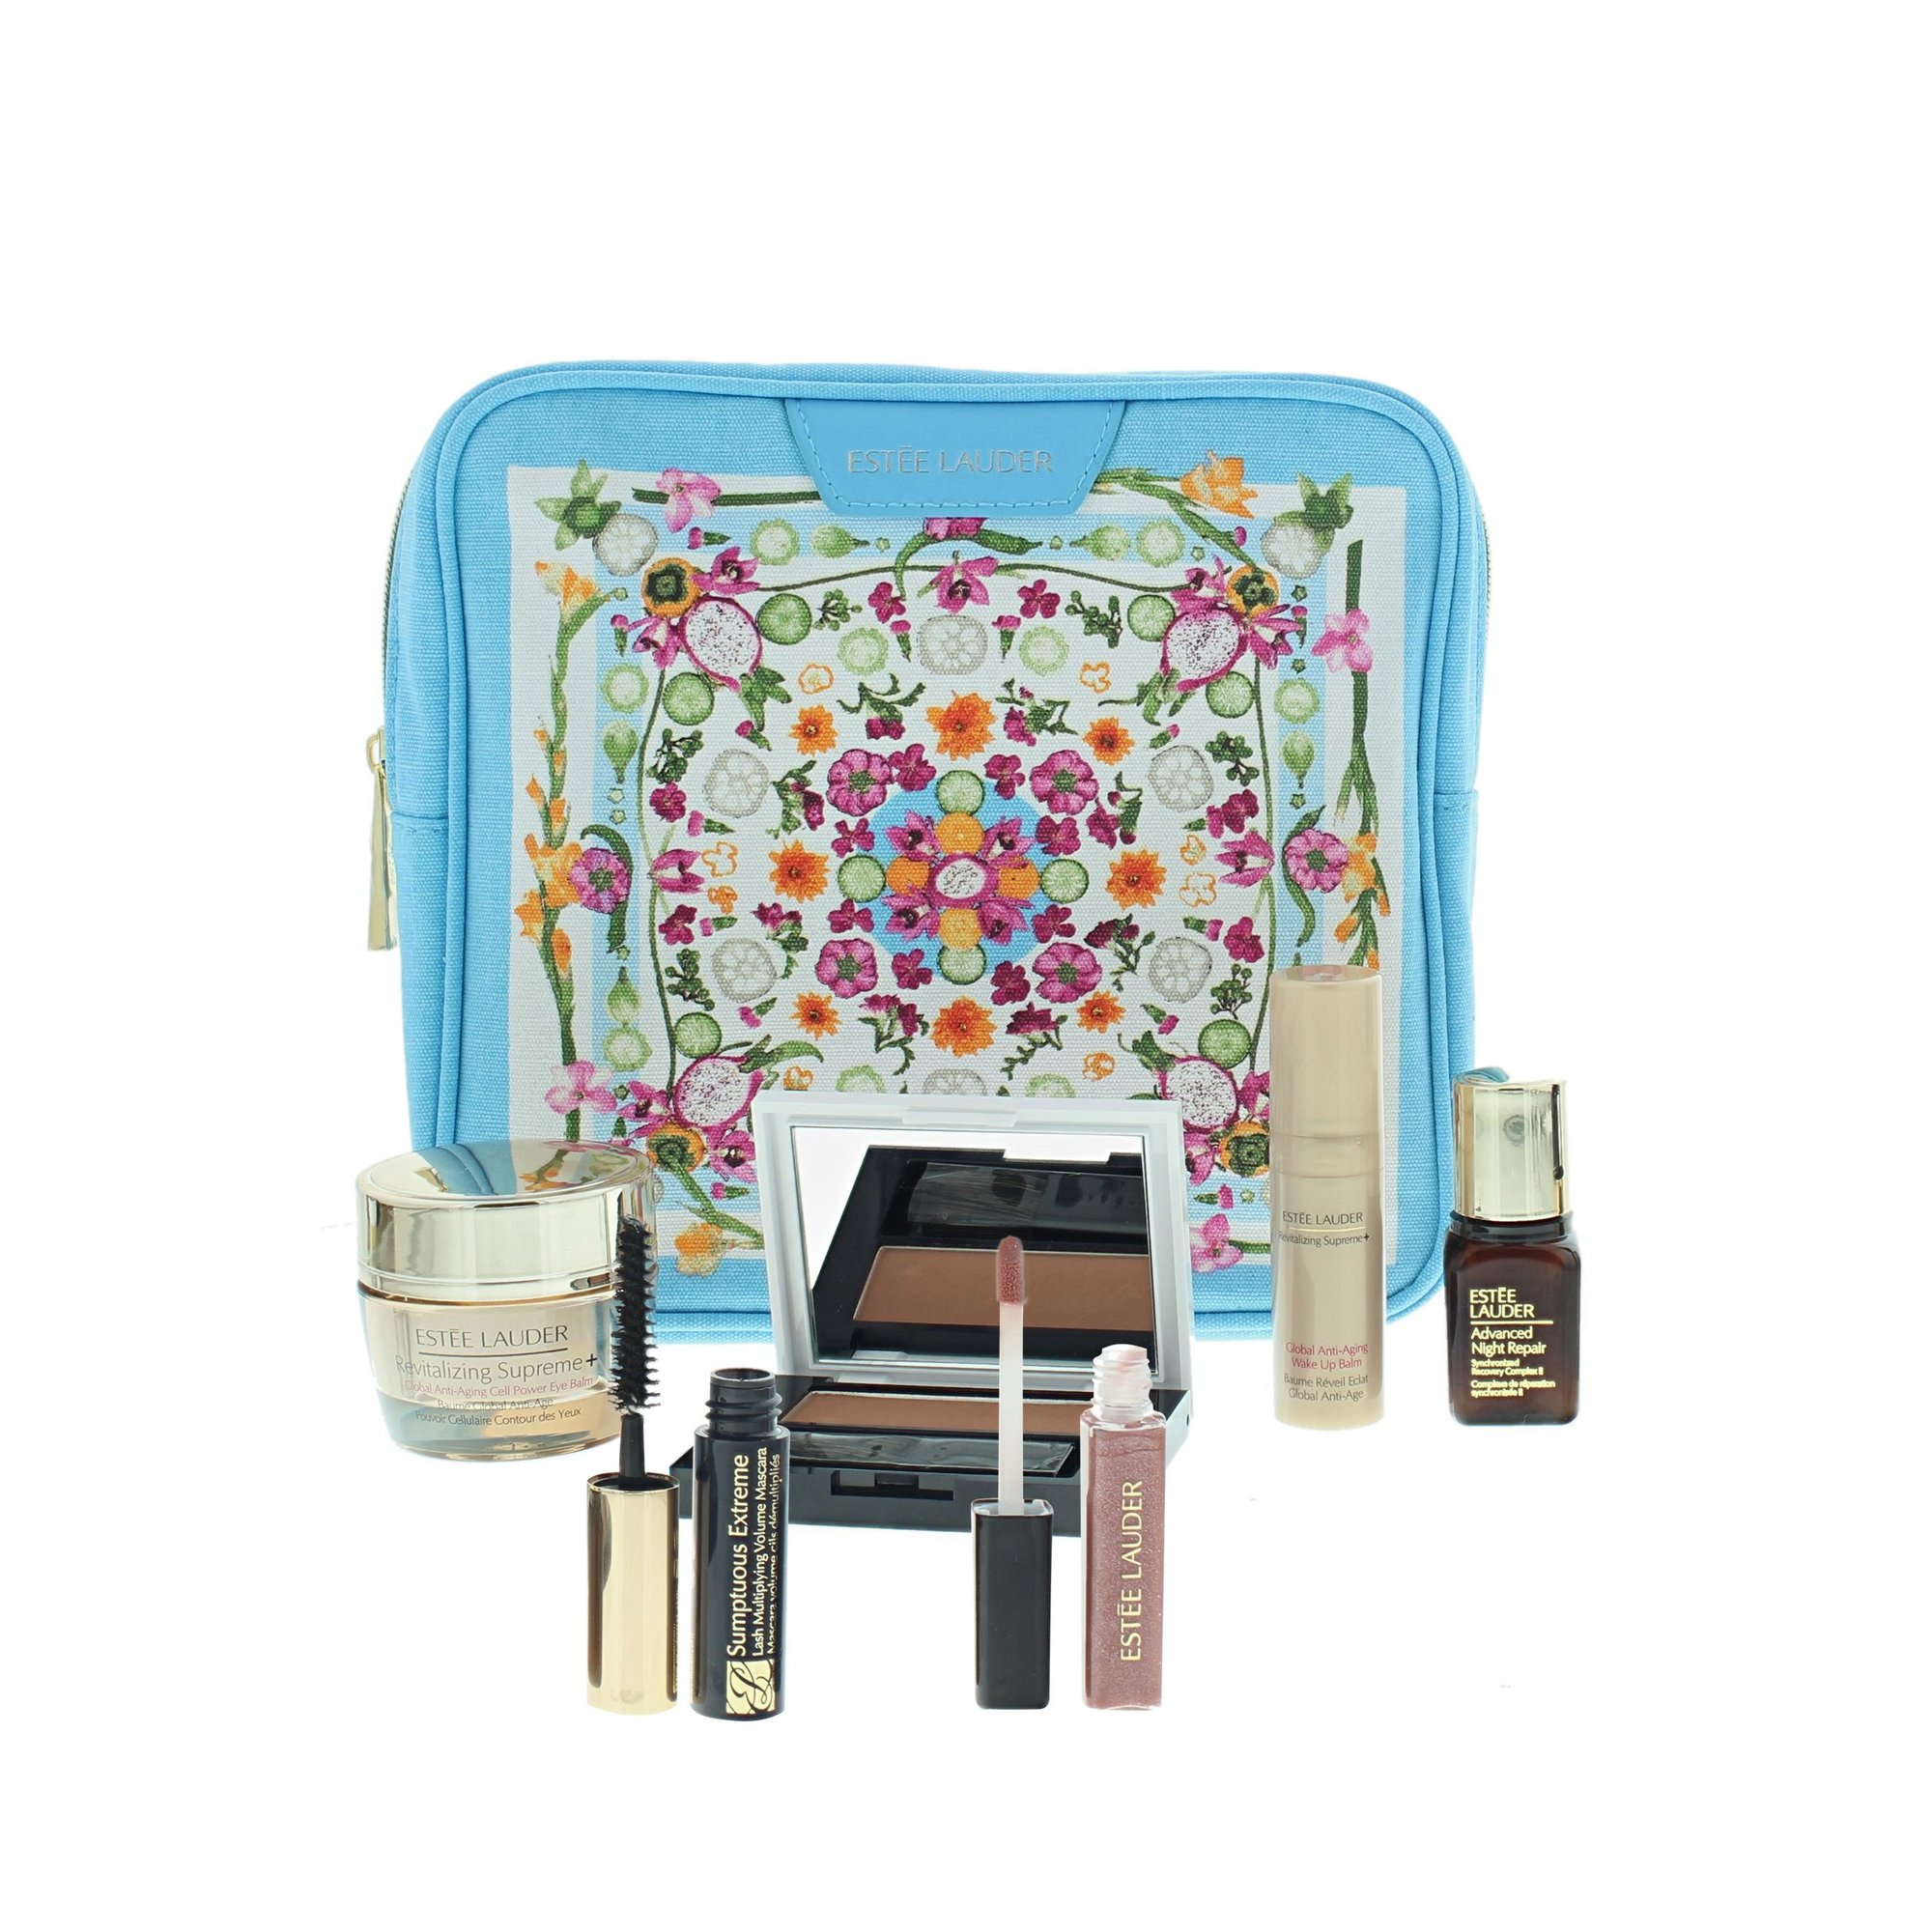 Image of Estee Lauder Glow and Go Cosmetic Set